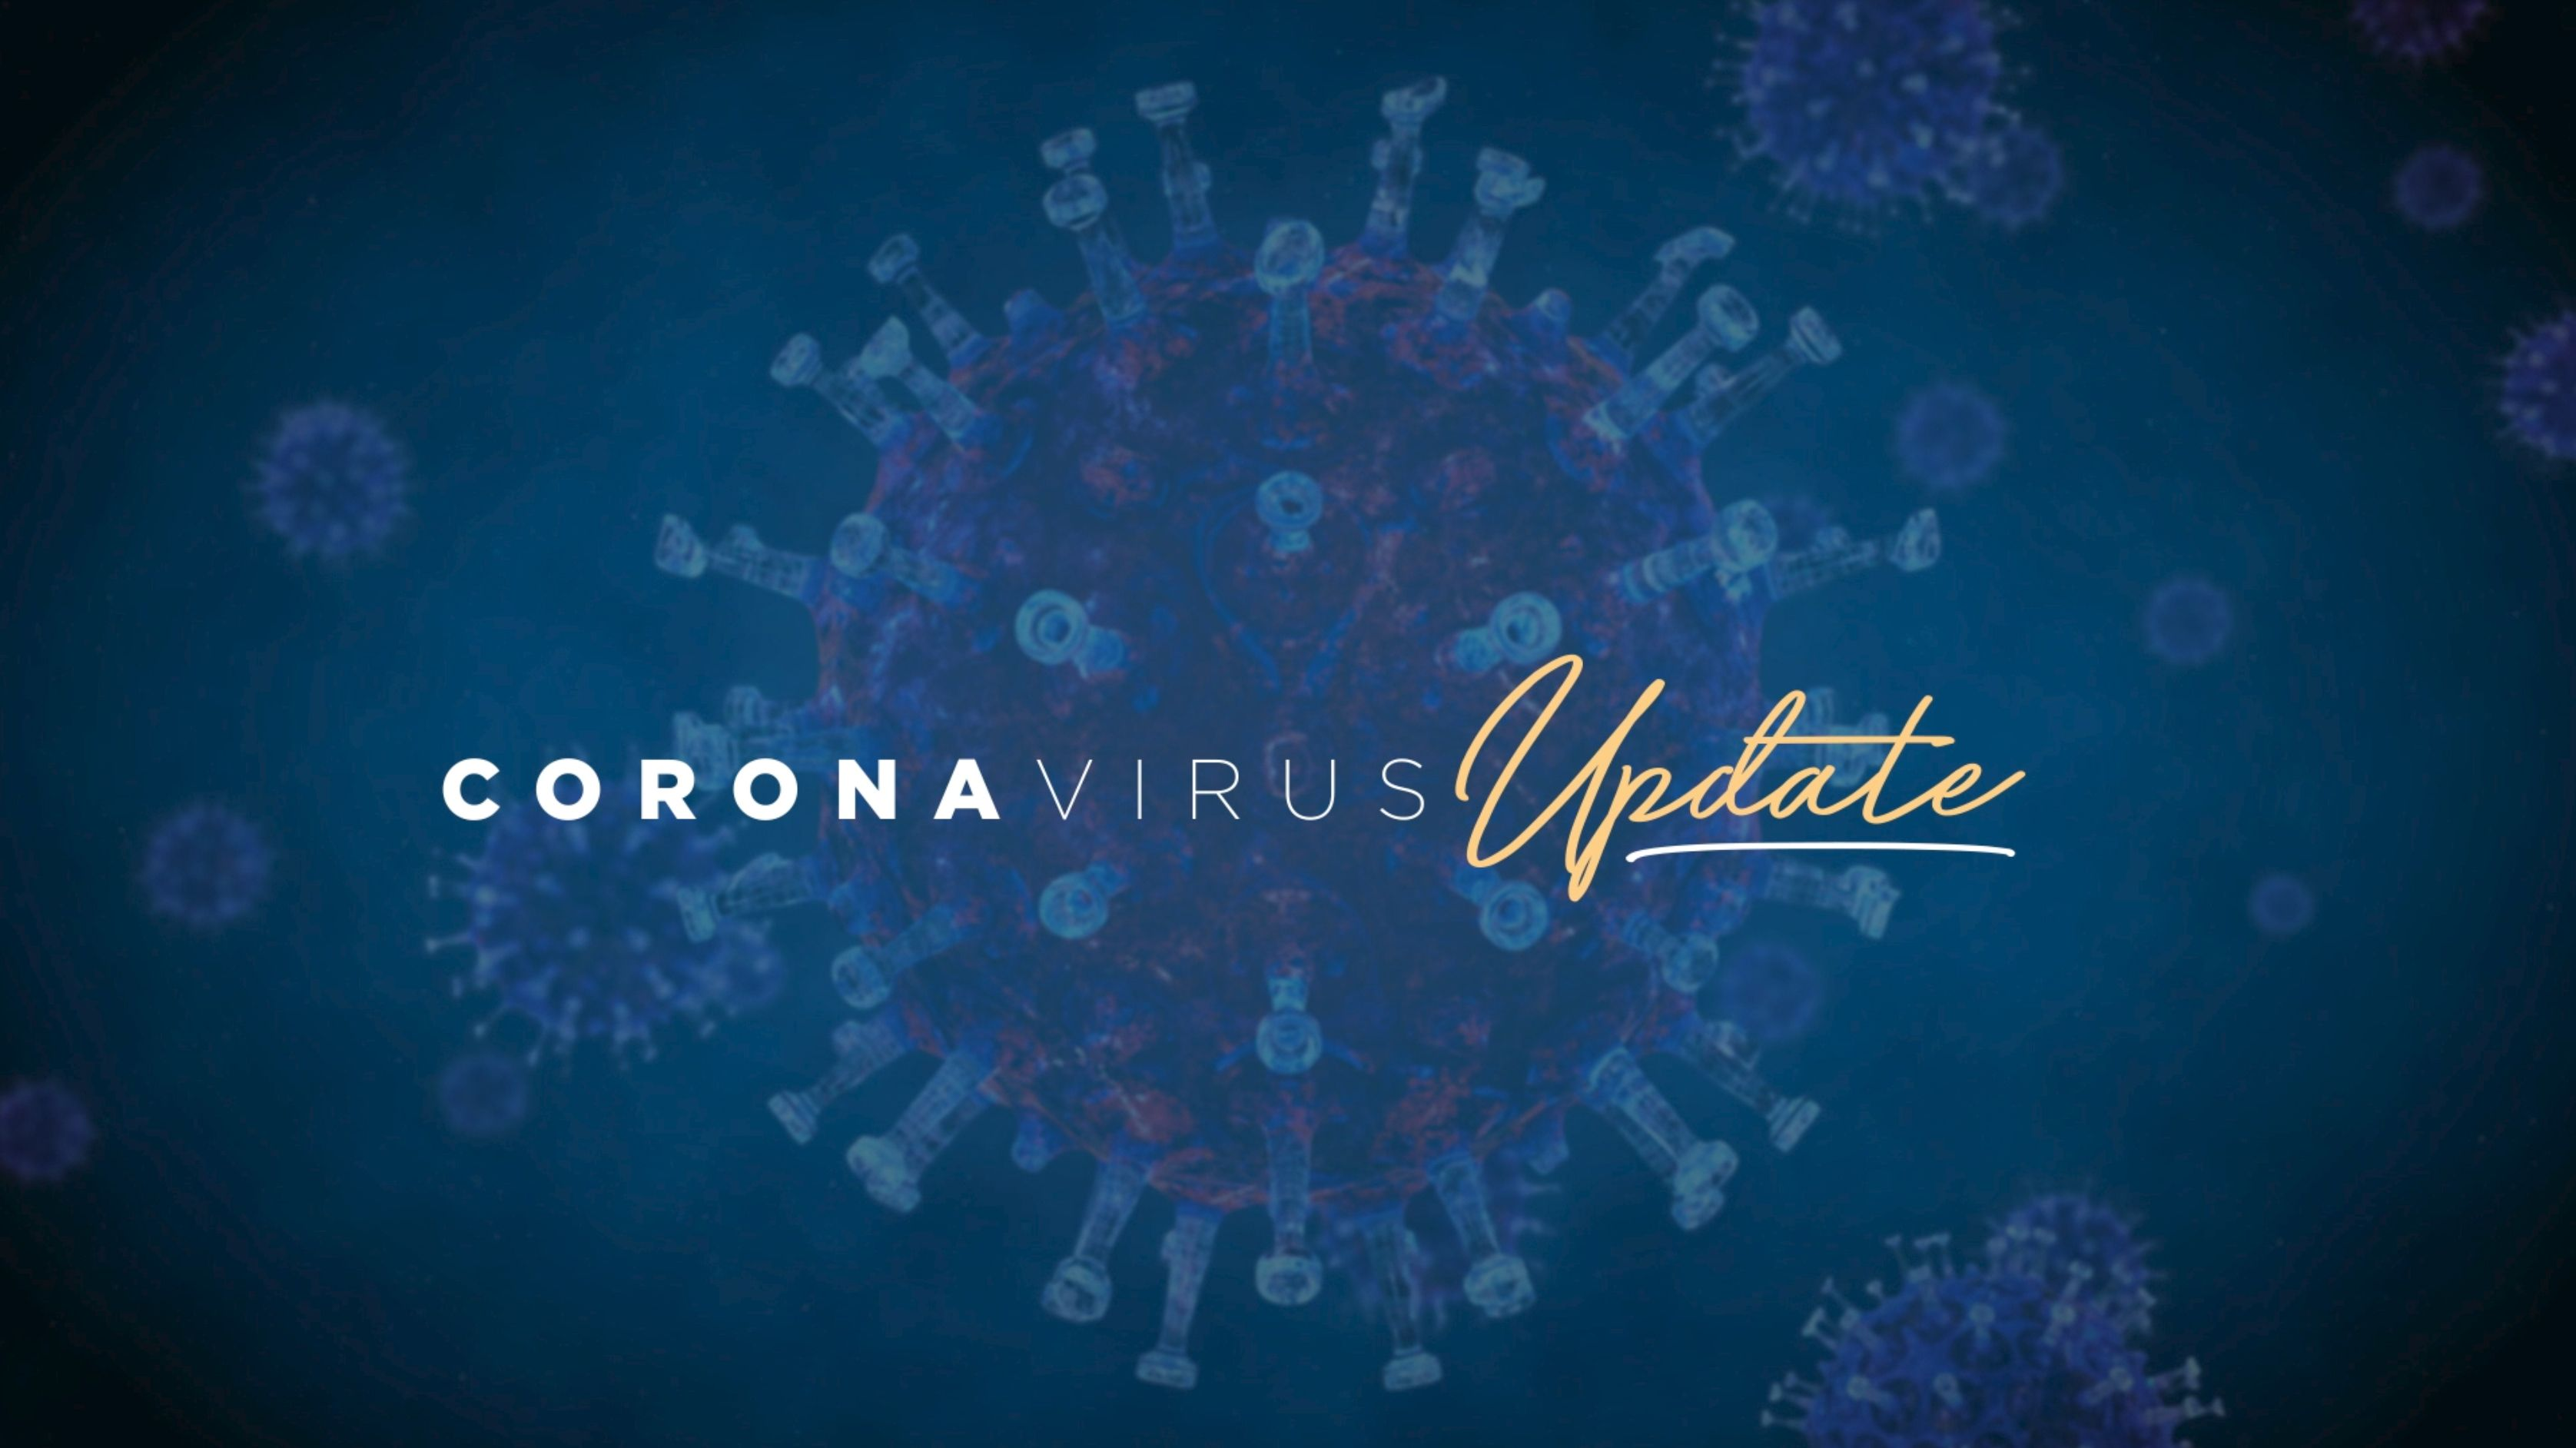 Church Statements on Coronavirus